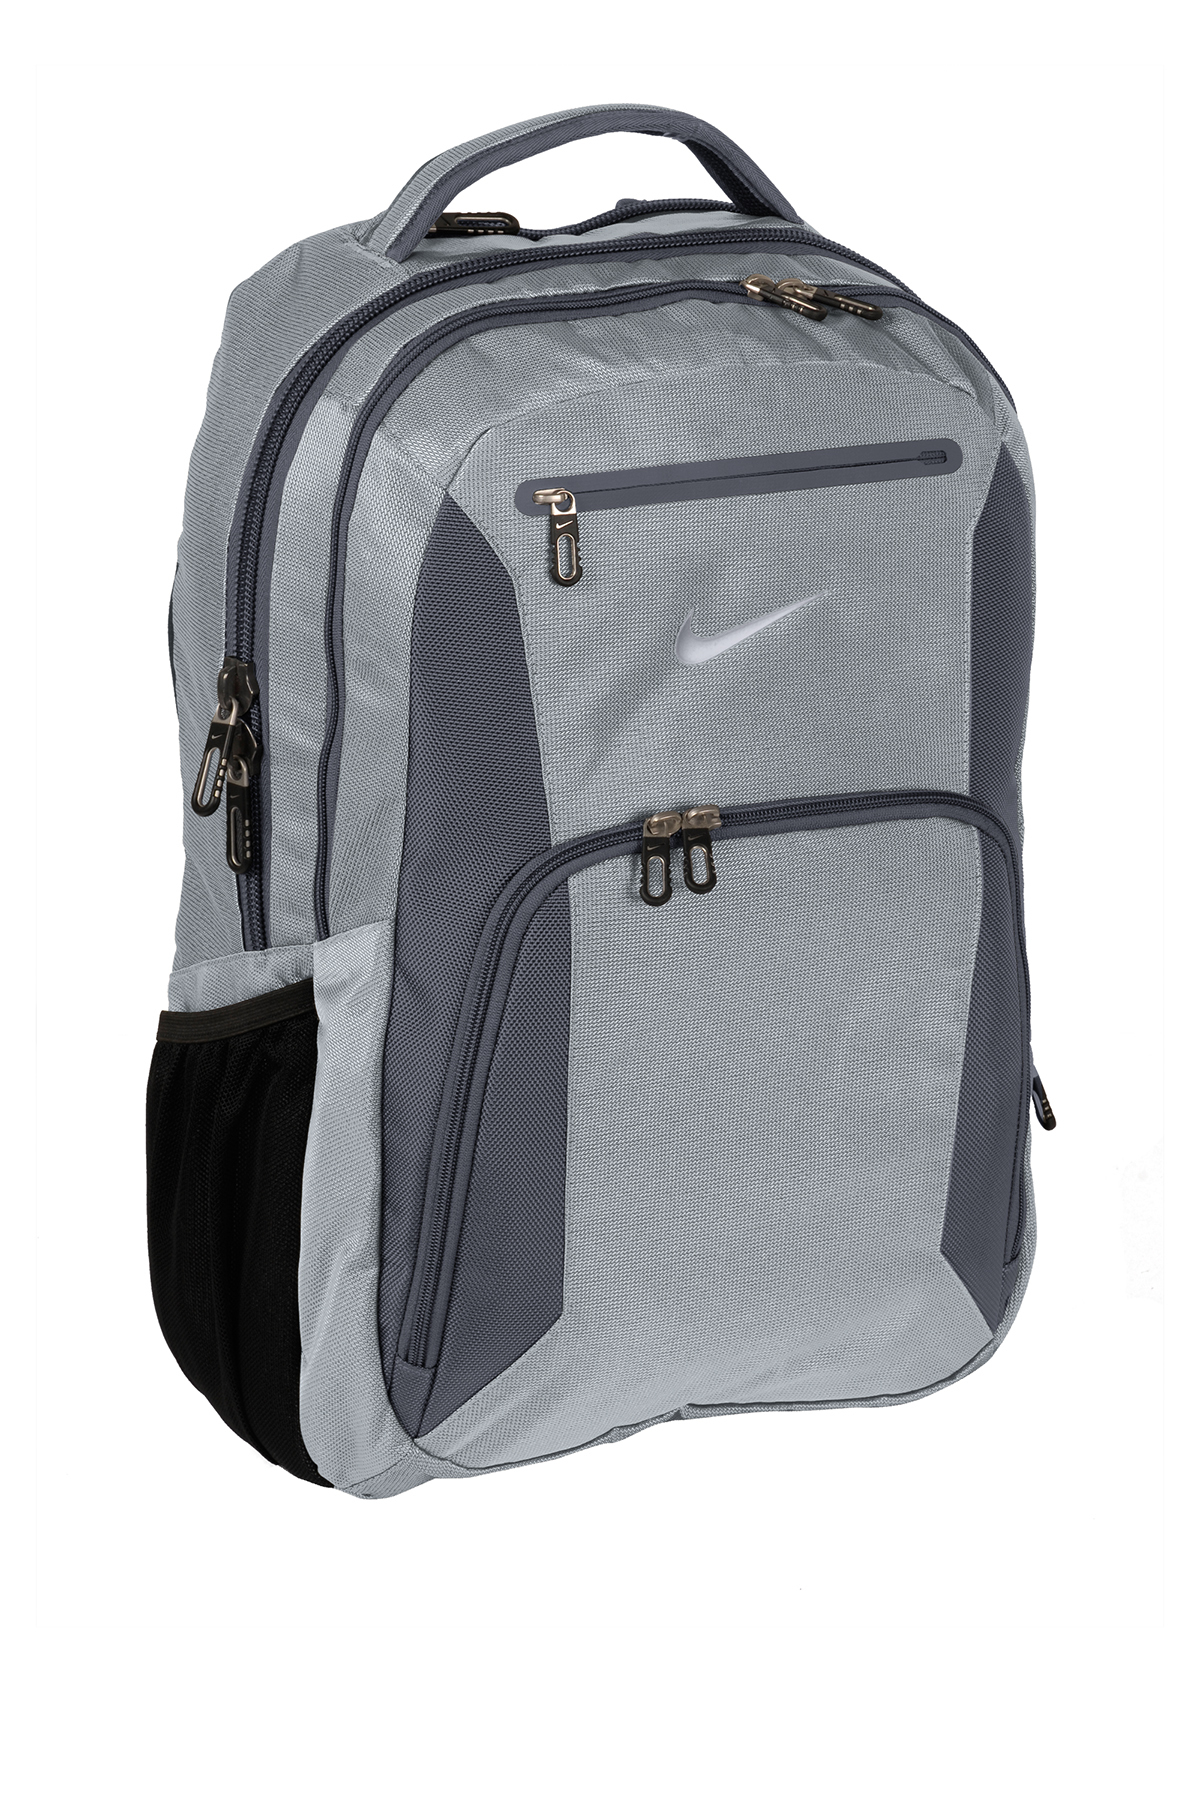 0e369d38c85 Nike Elite Backpack | Backpacks | Bags | SanMar